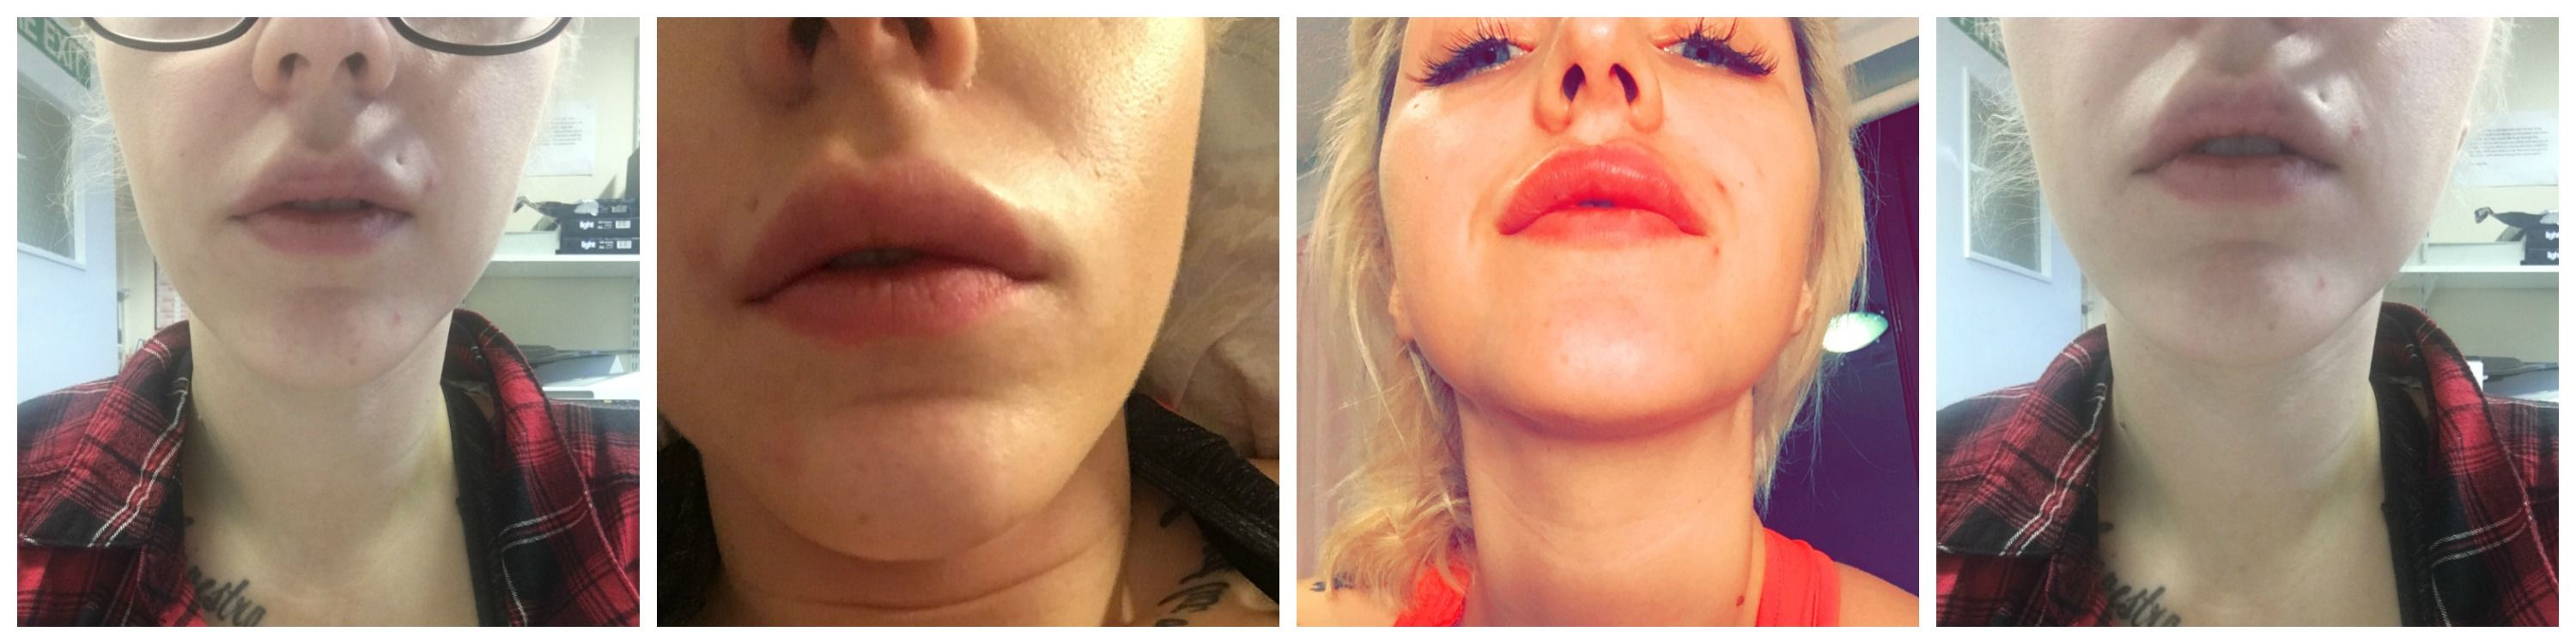 Lip Fillers Swelling After Photos